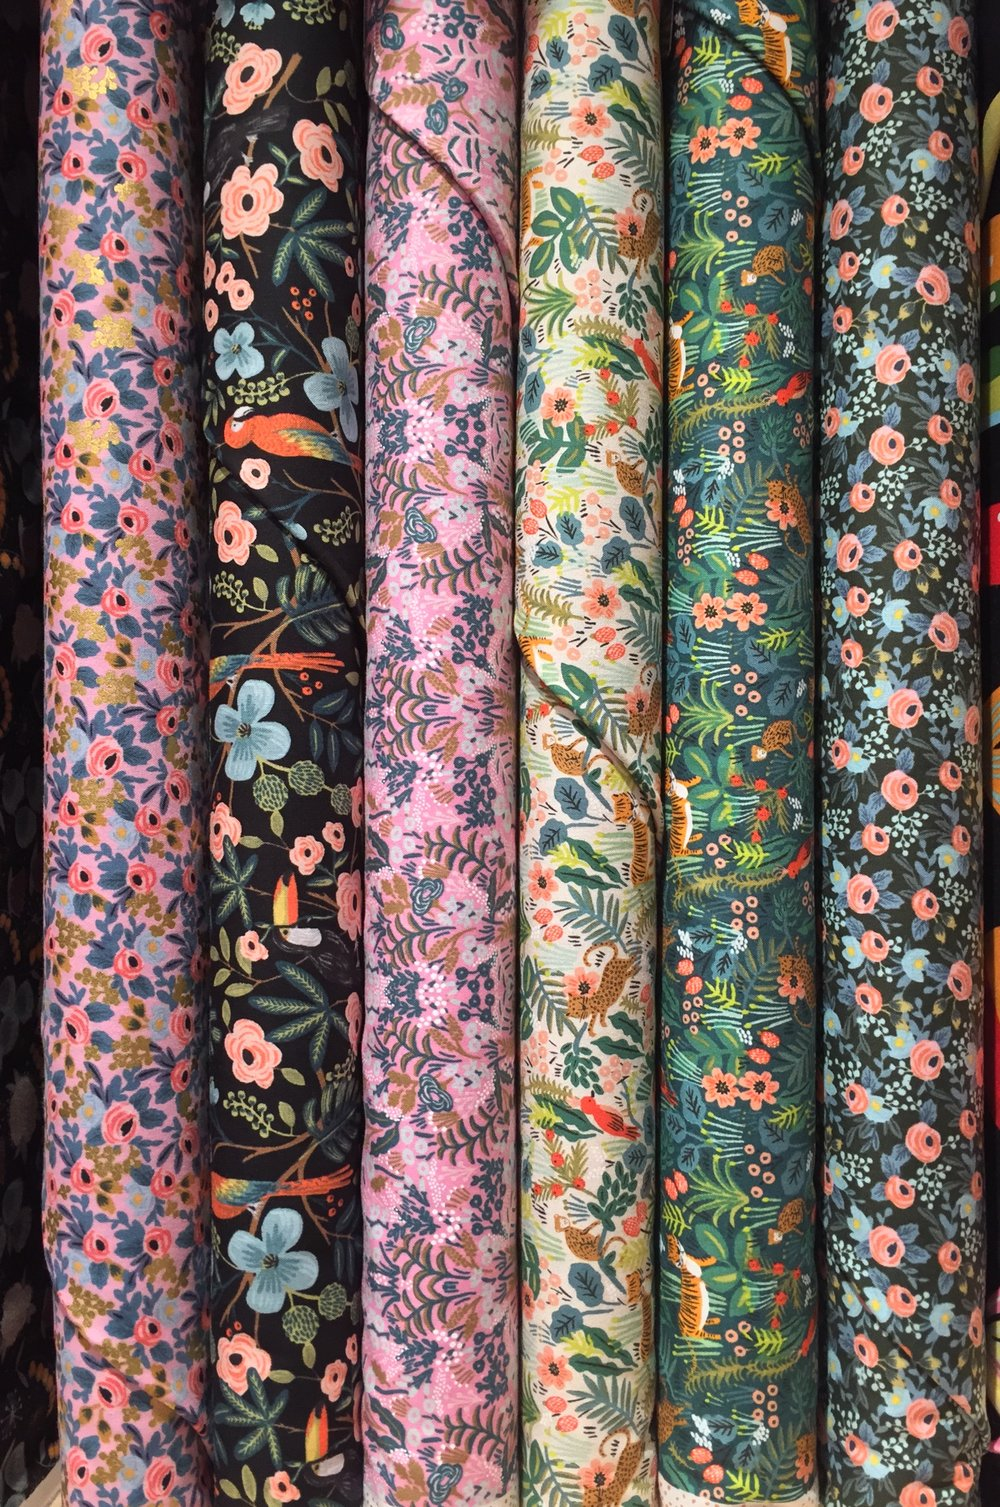 Rifle Paper Co's quilting weight cotton prints for Cotton + Steel.